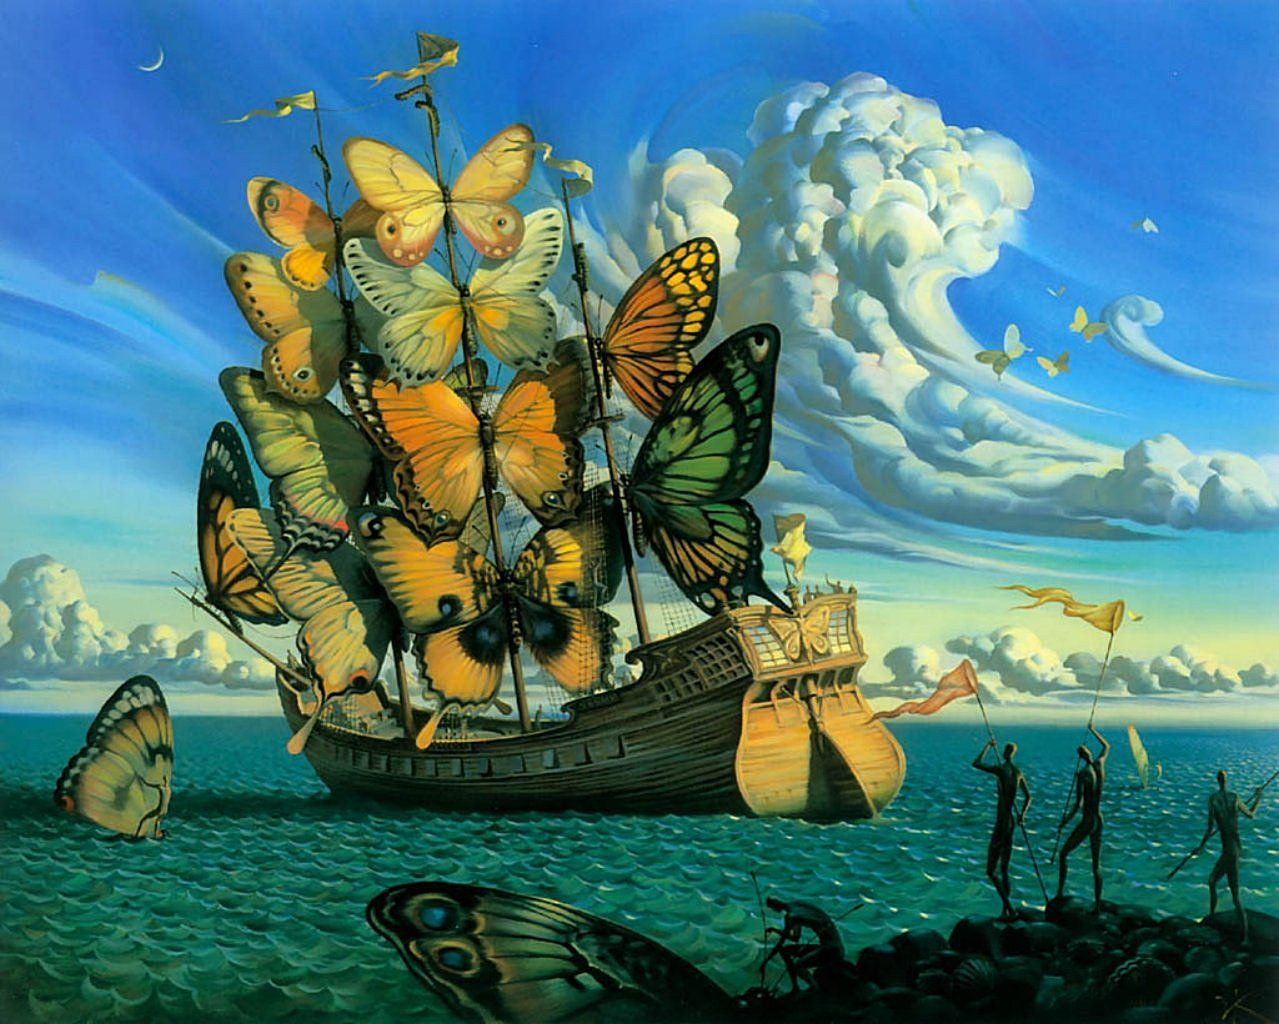 Vladimir kush departure of the winged ship his work is so vladimir kush departure of the winged ship his work is so dreamlike biocorpaavc